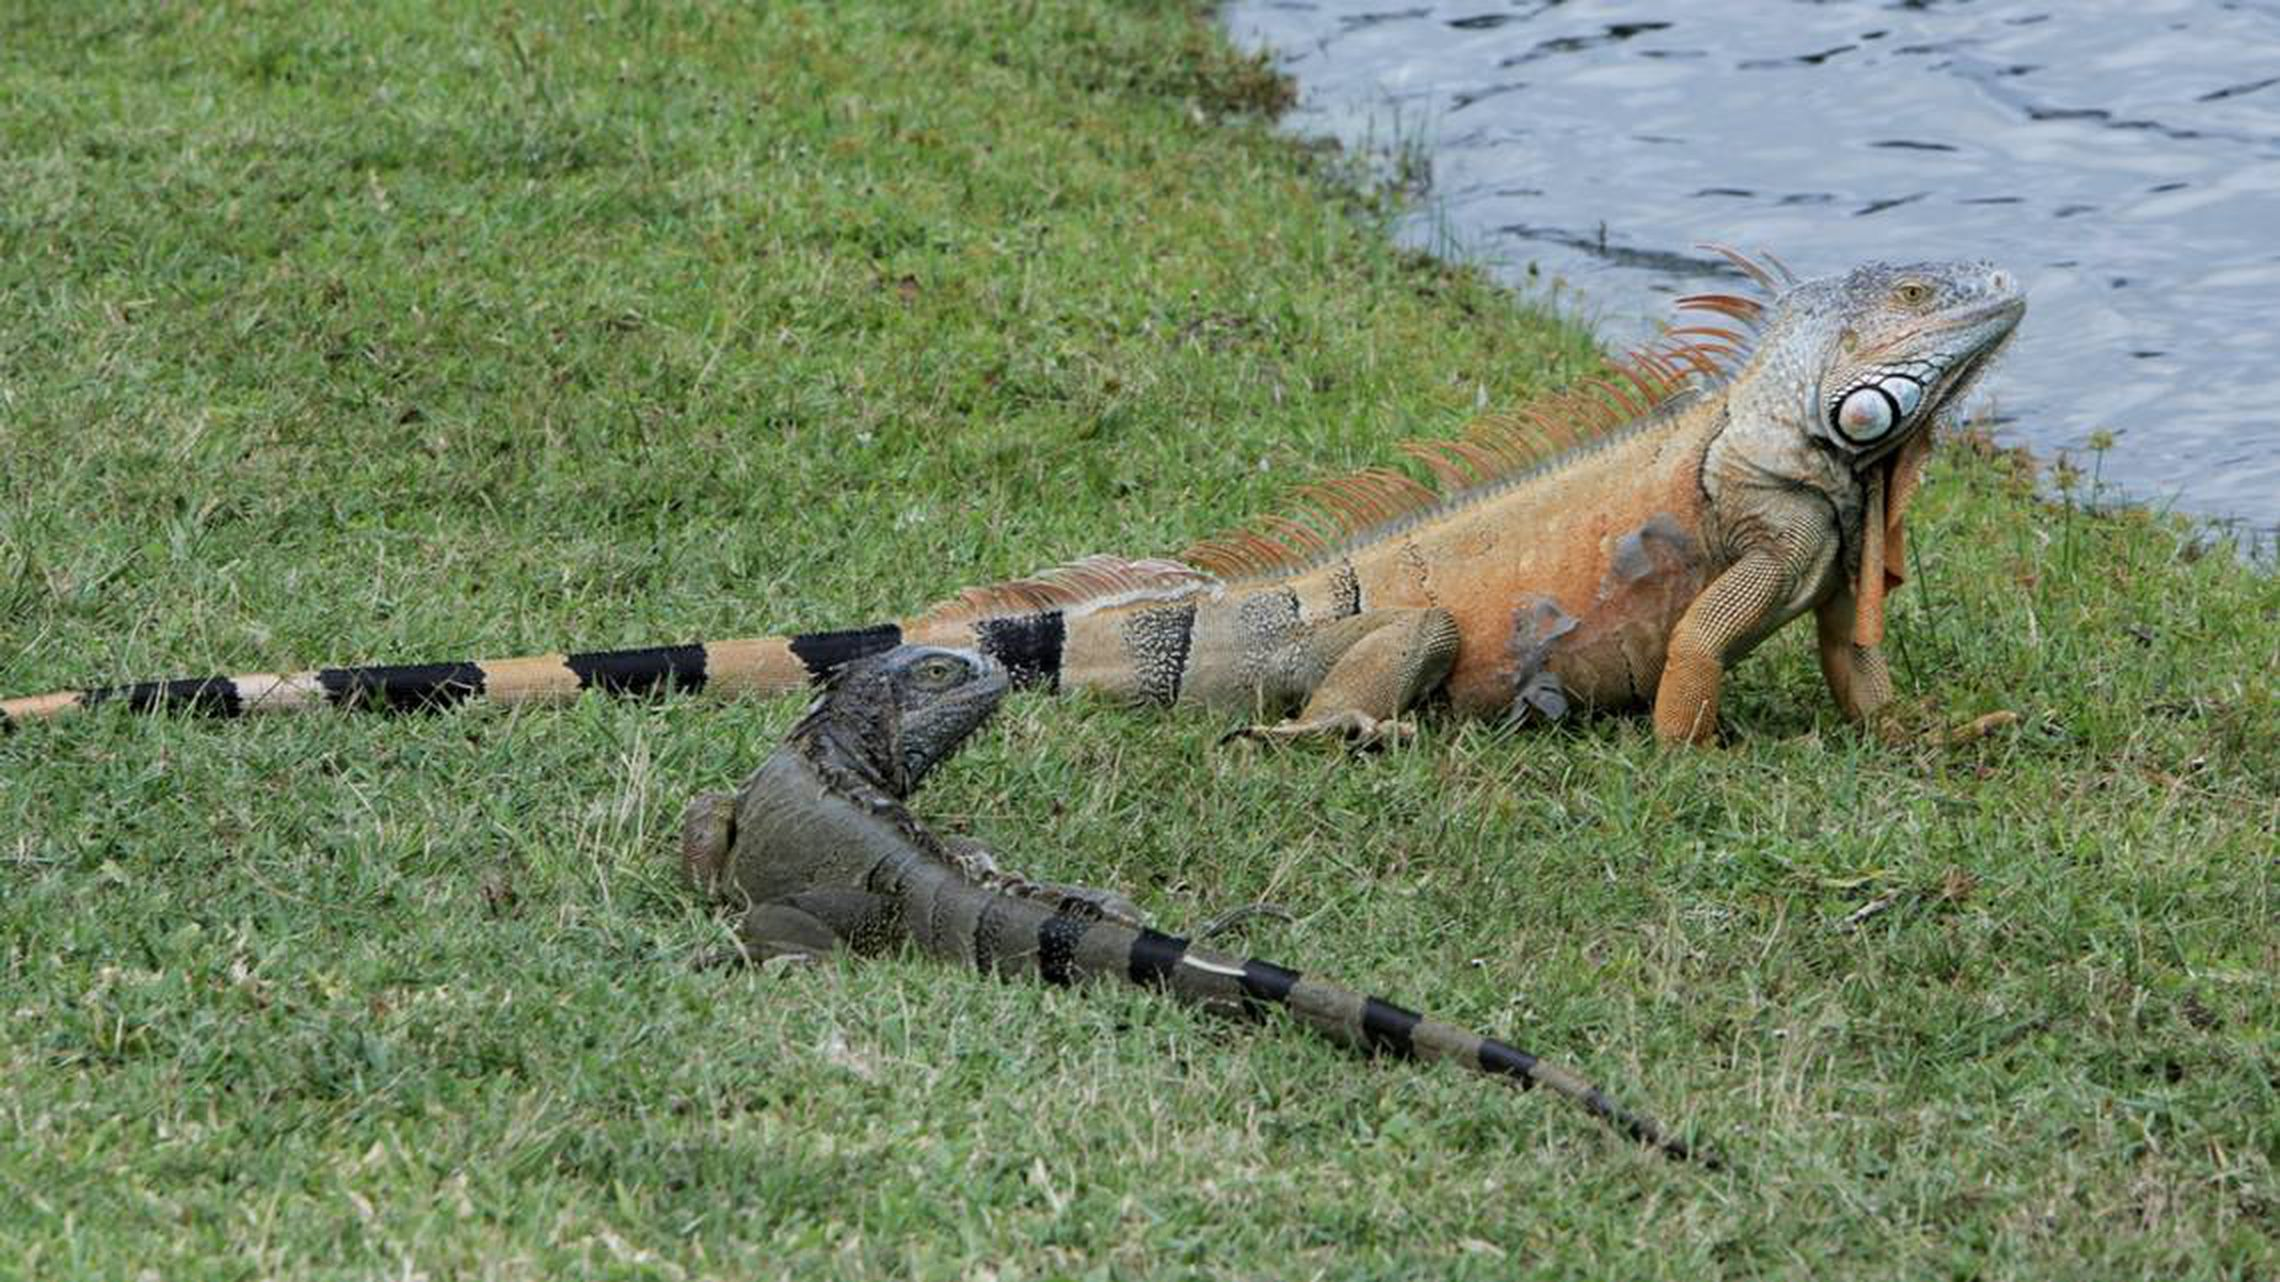 green-iguana-invasion-everglades.jpg